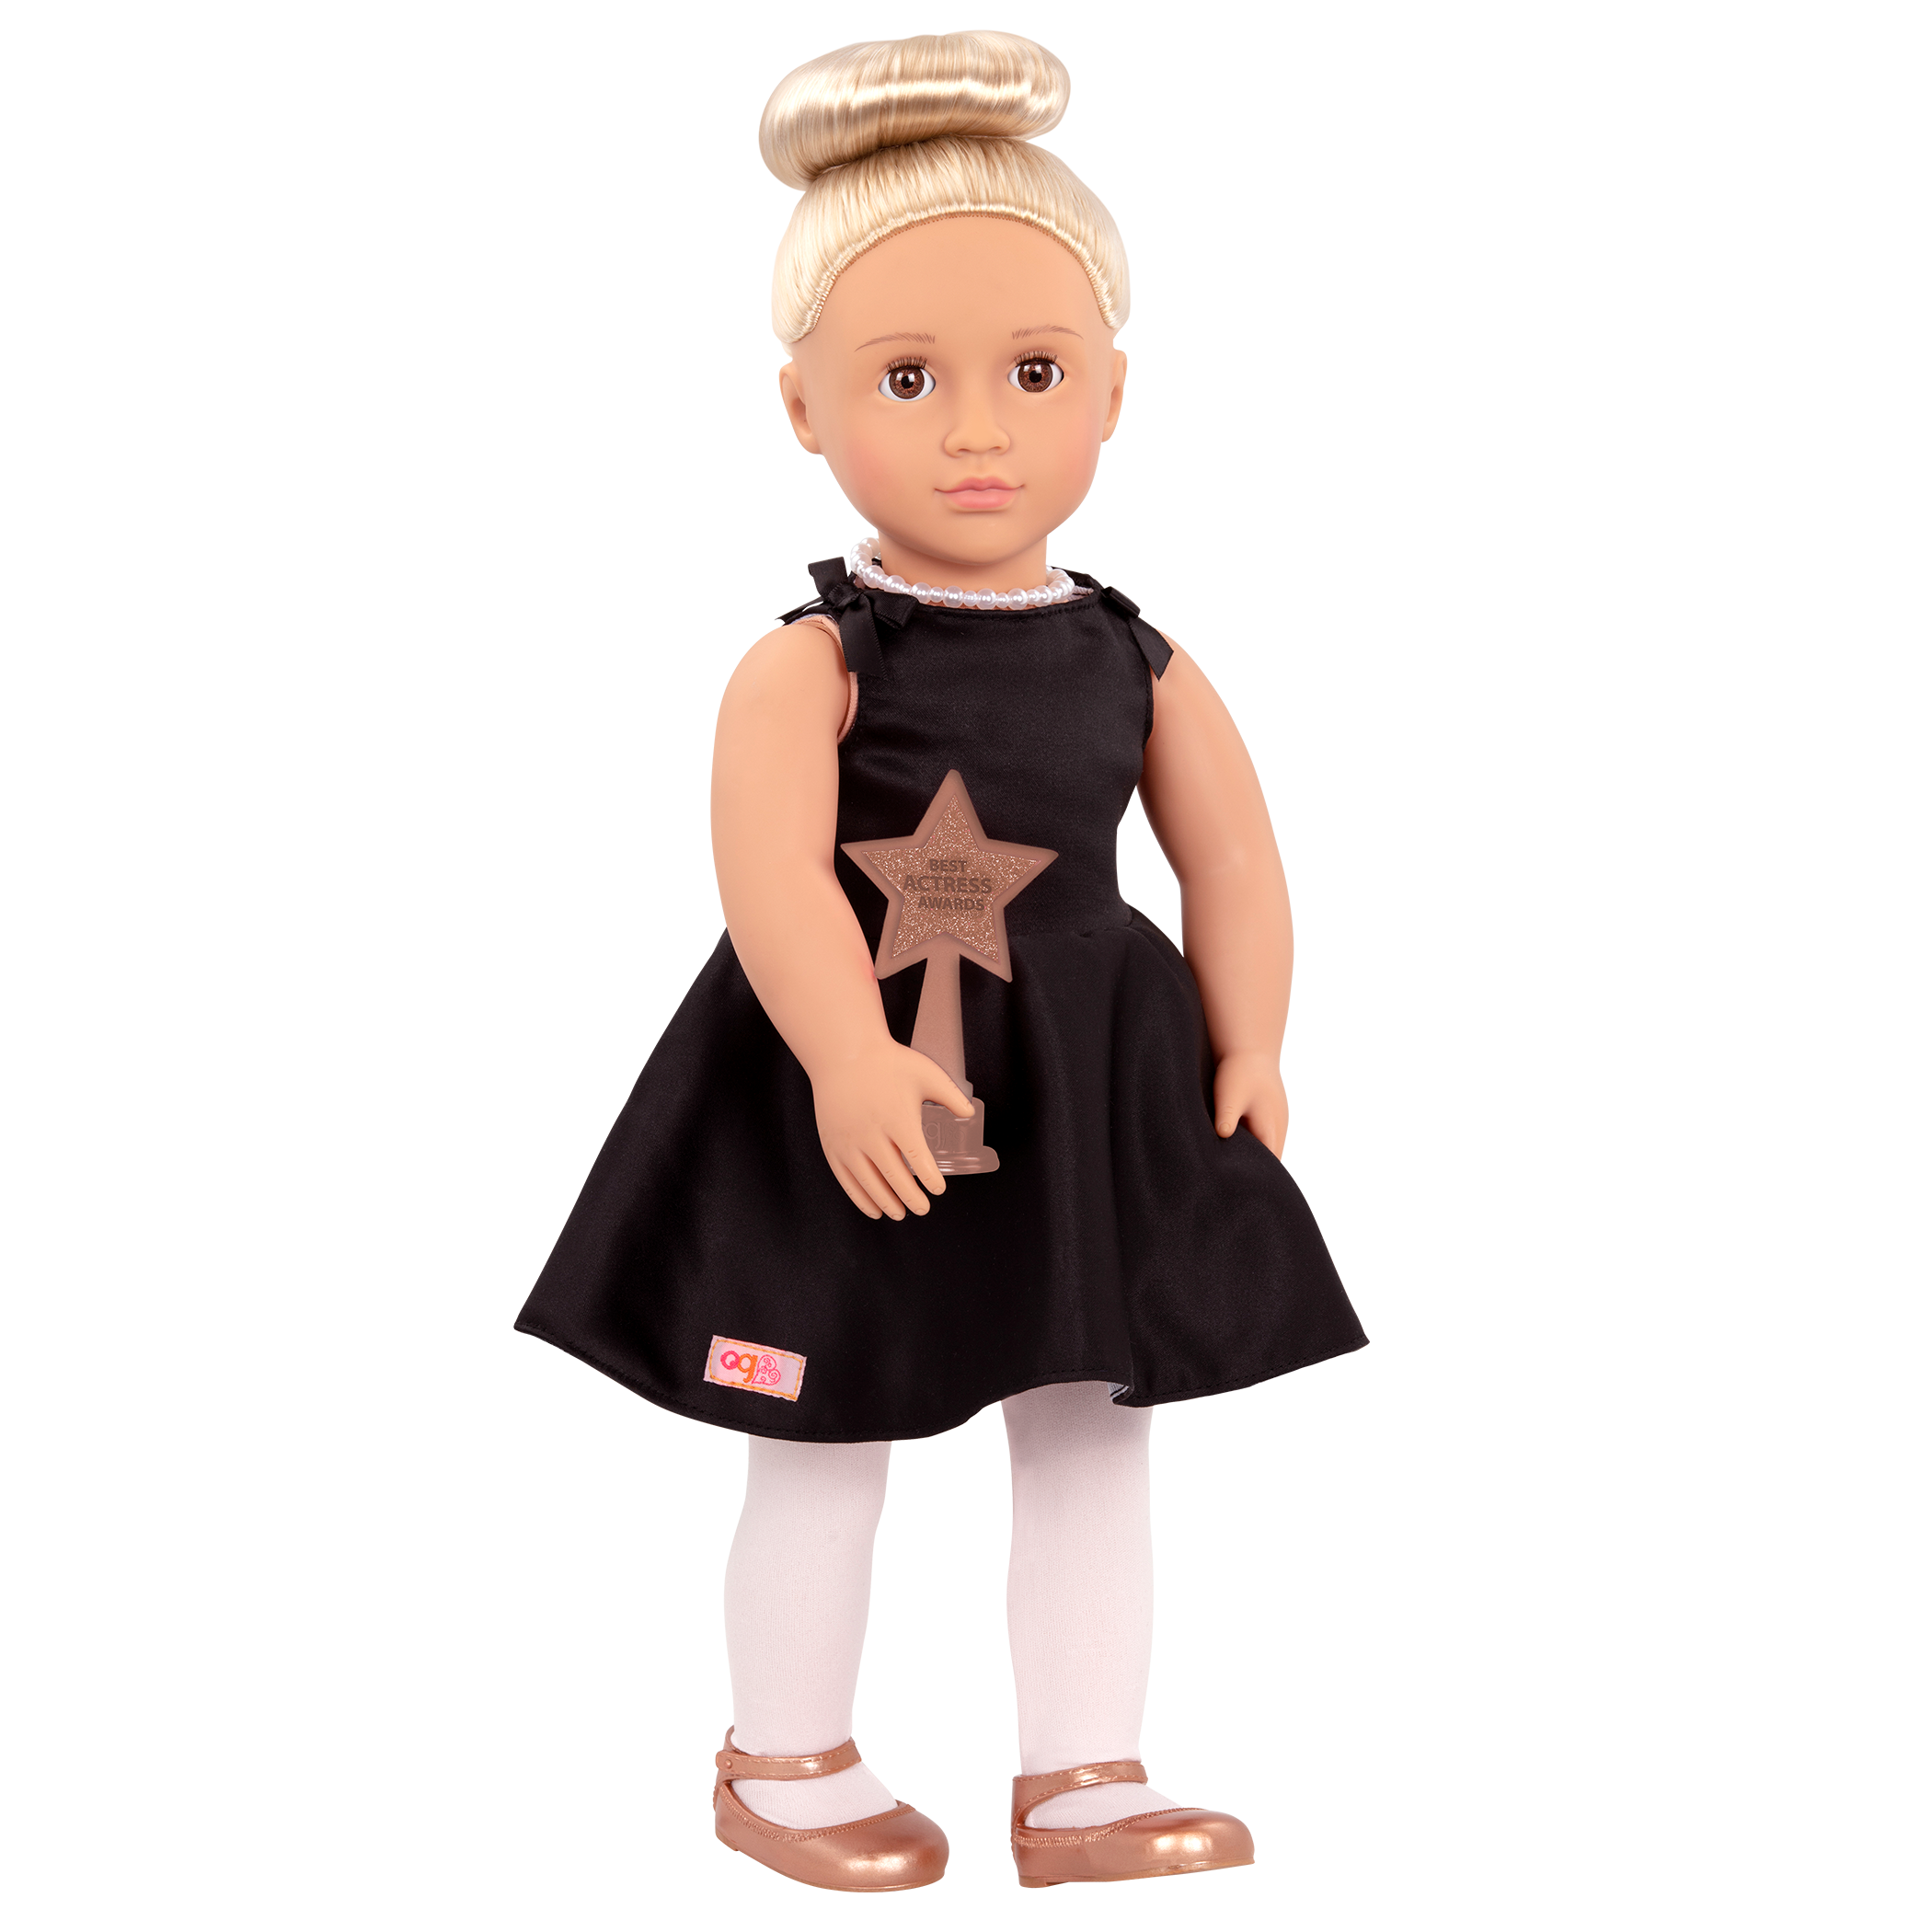 Rafaella Regular 18-inch Actress Doll holding award